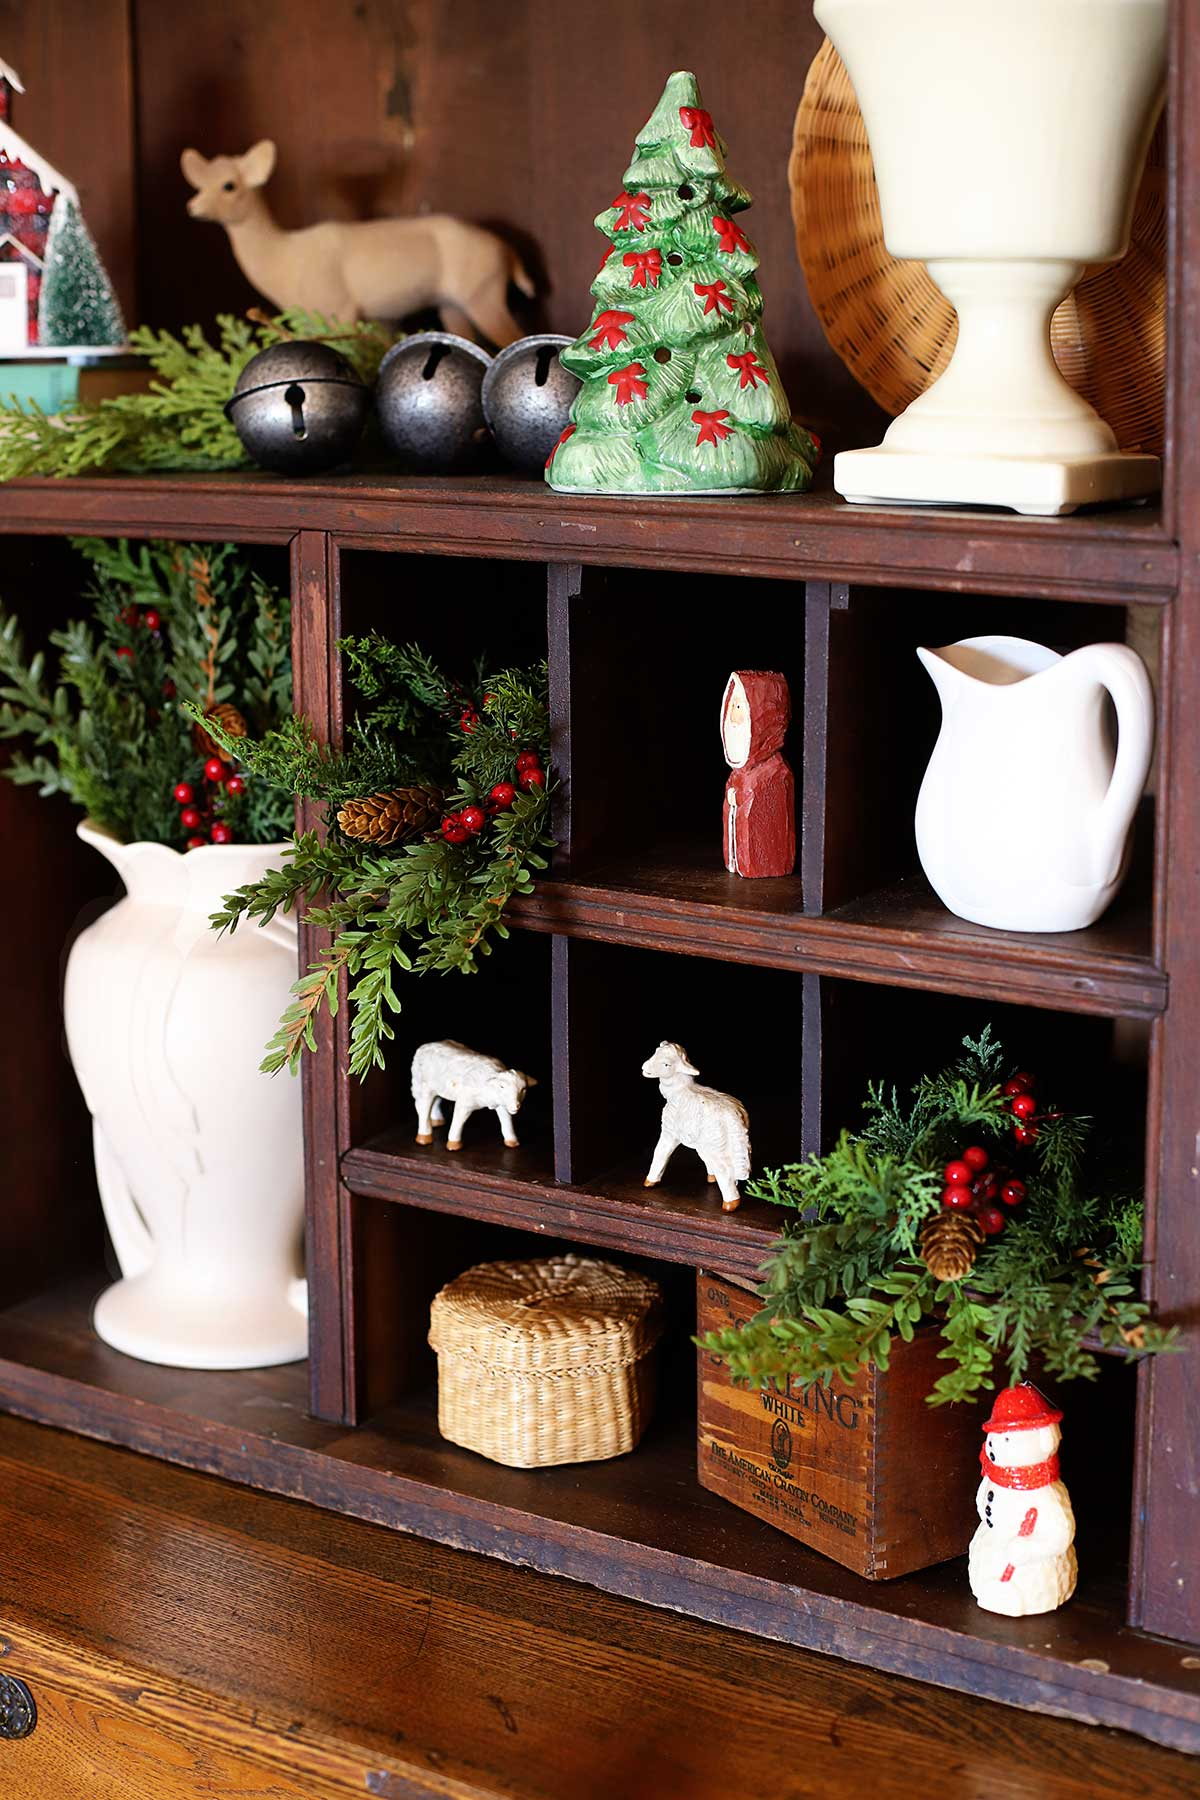 decorating the hutch for Christmas